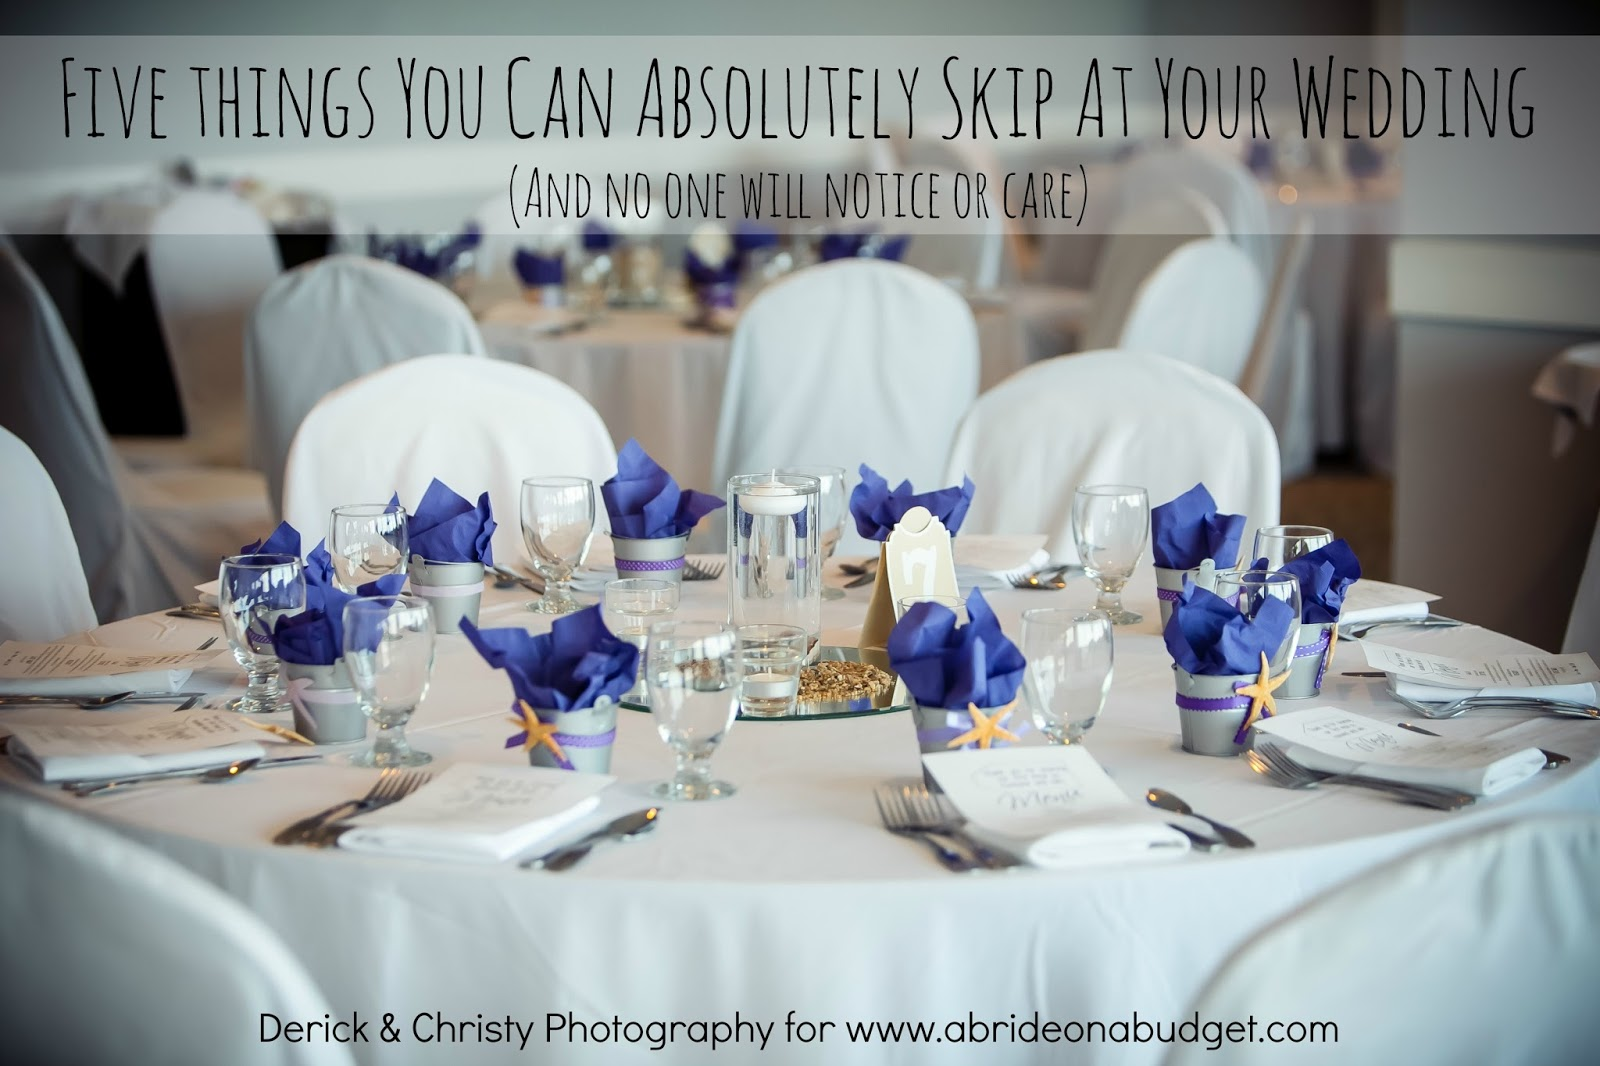 five-things-you-can-skip-at-your-wedding